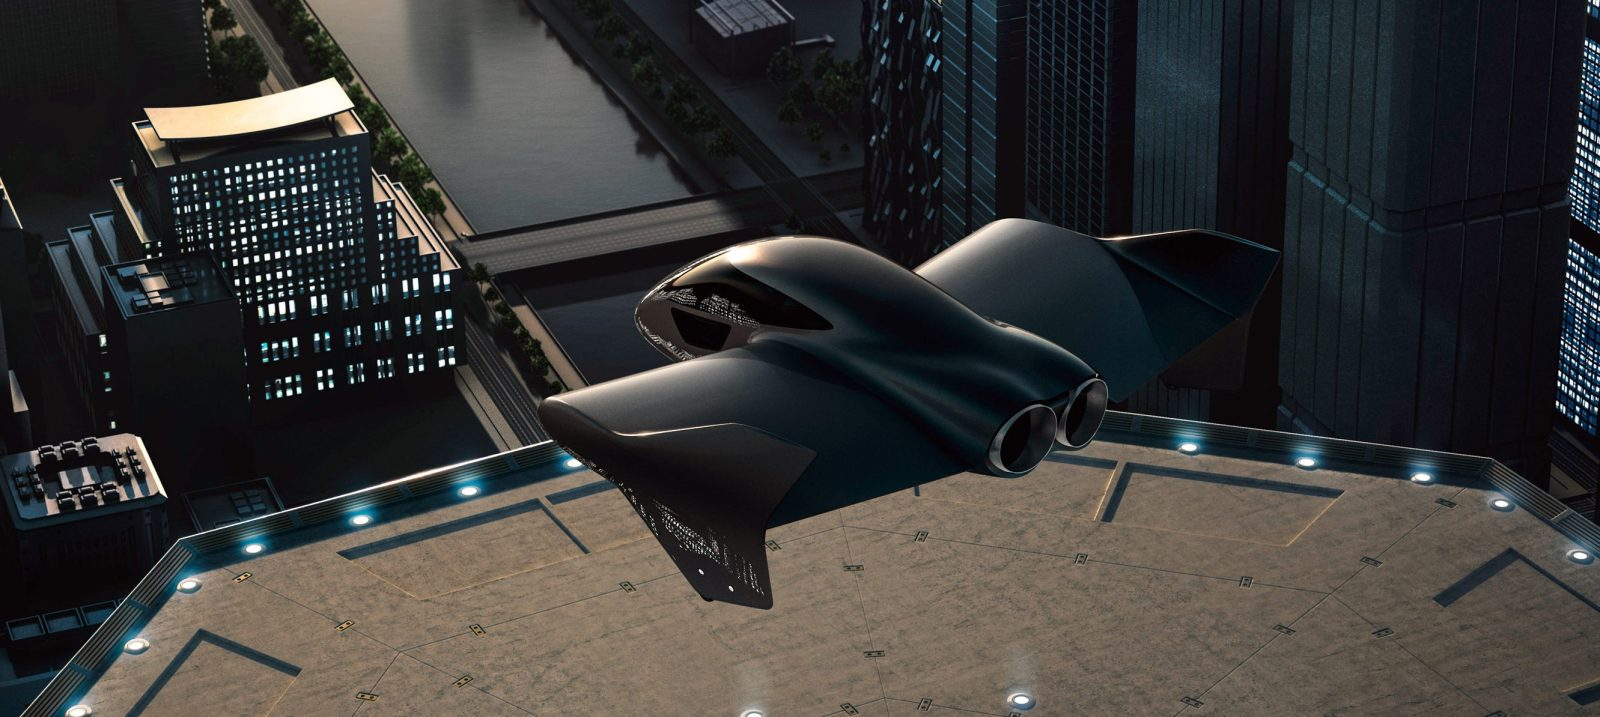 Porsche is building an electric vertical take-off and landing aircraft (eVTOL) with Boeing